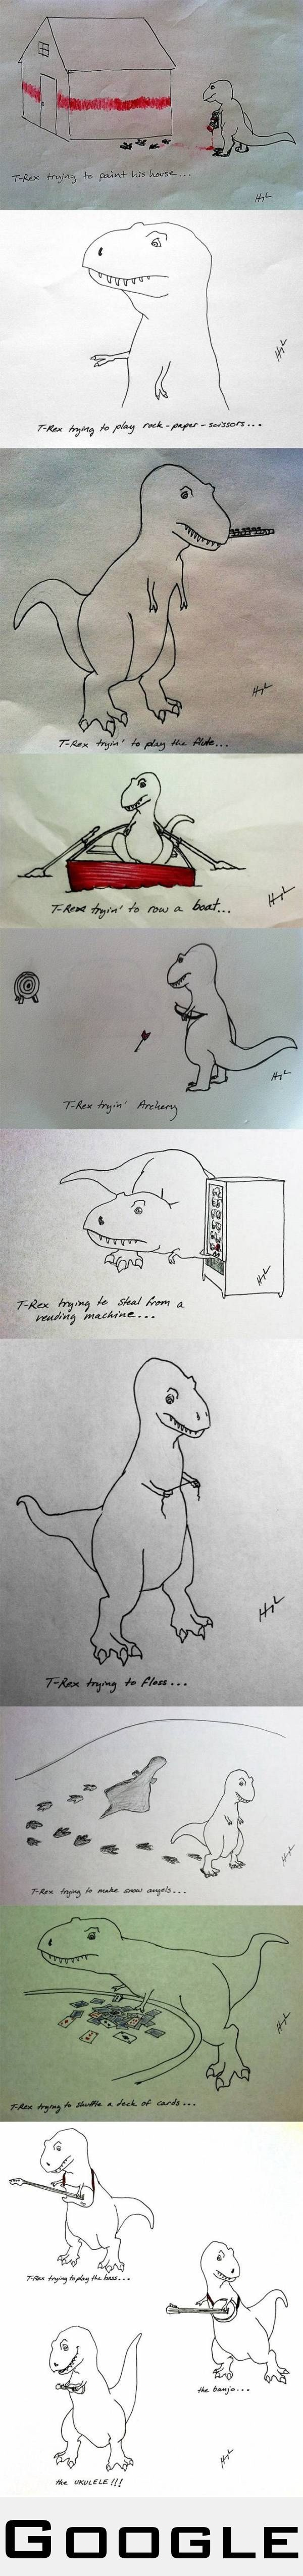 T-rex trying to do things